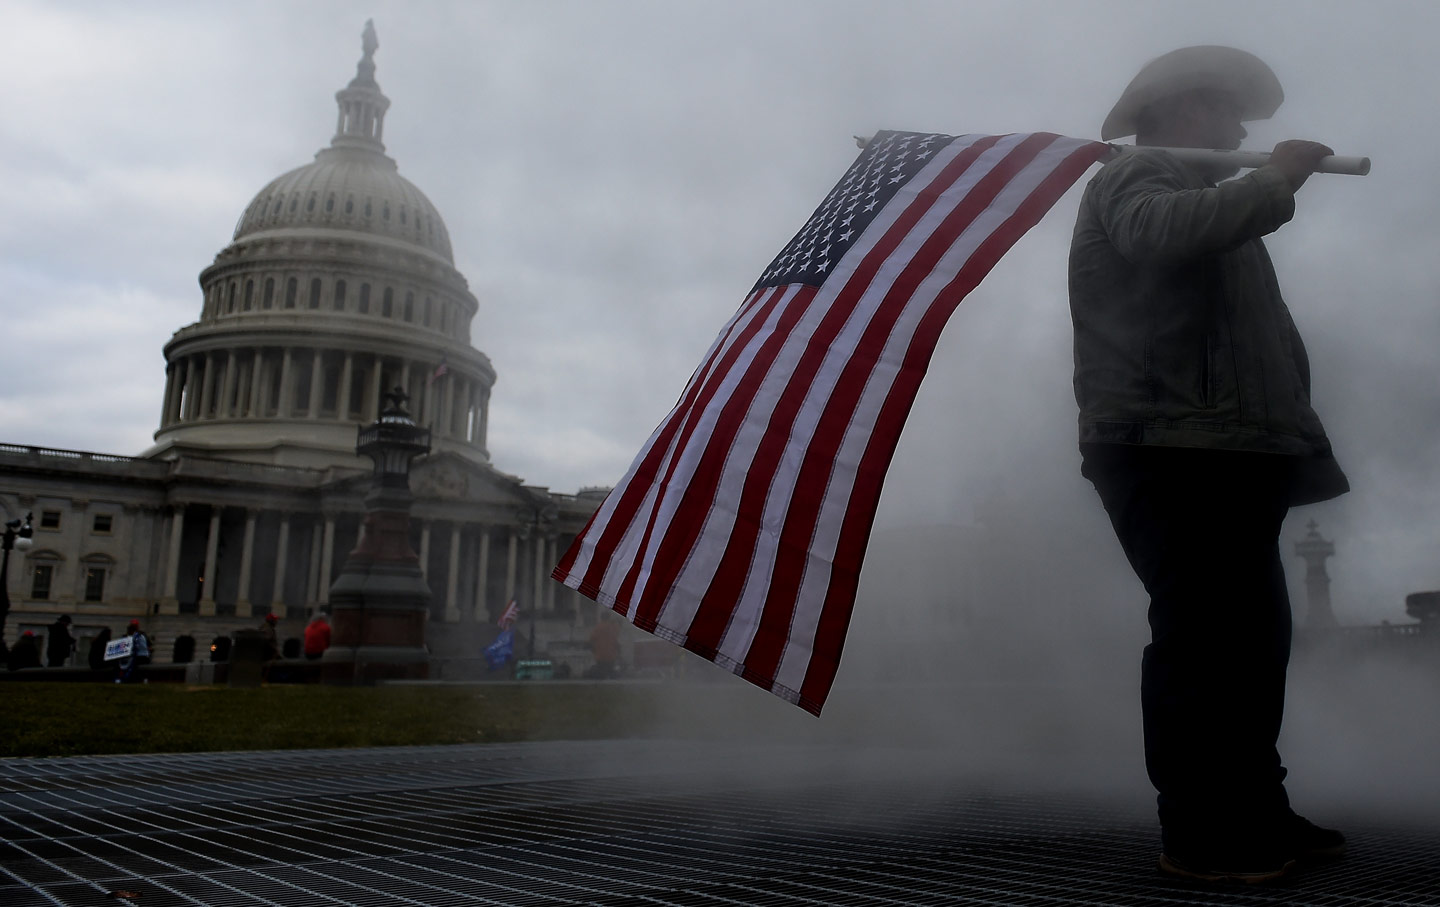 capitol-flag-steam-man-gty